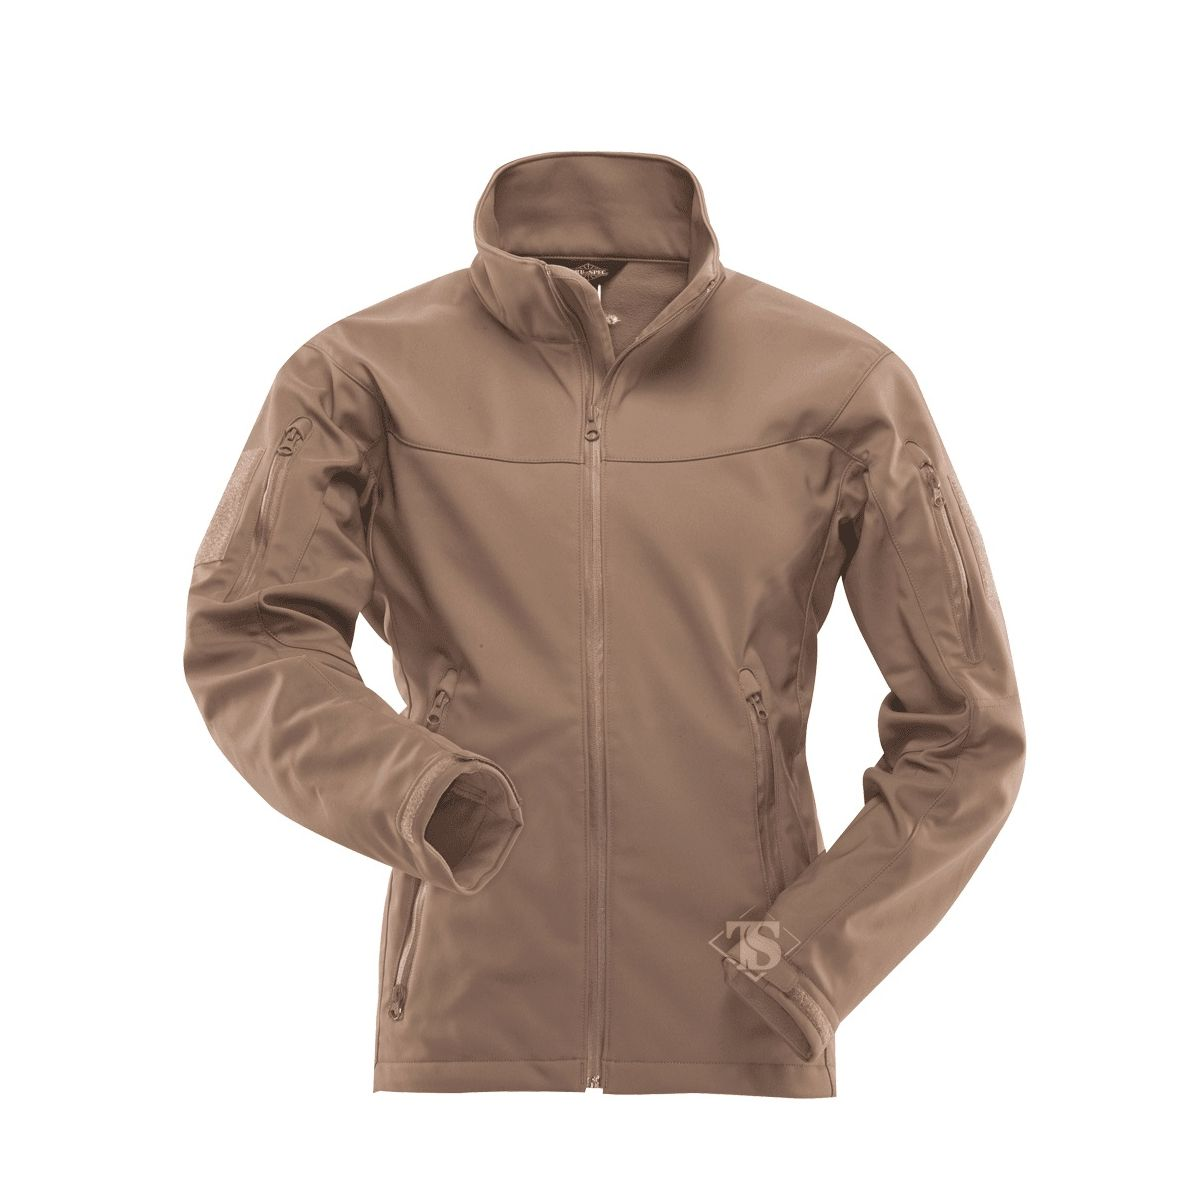 Bunda TACTICAL SOFTSHELL 24-7 COYOTE TRU-SPEC 24-7 24590 L-11